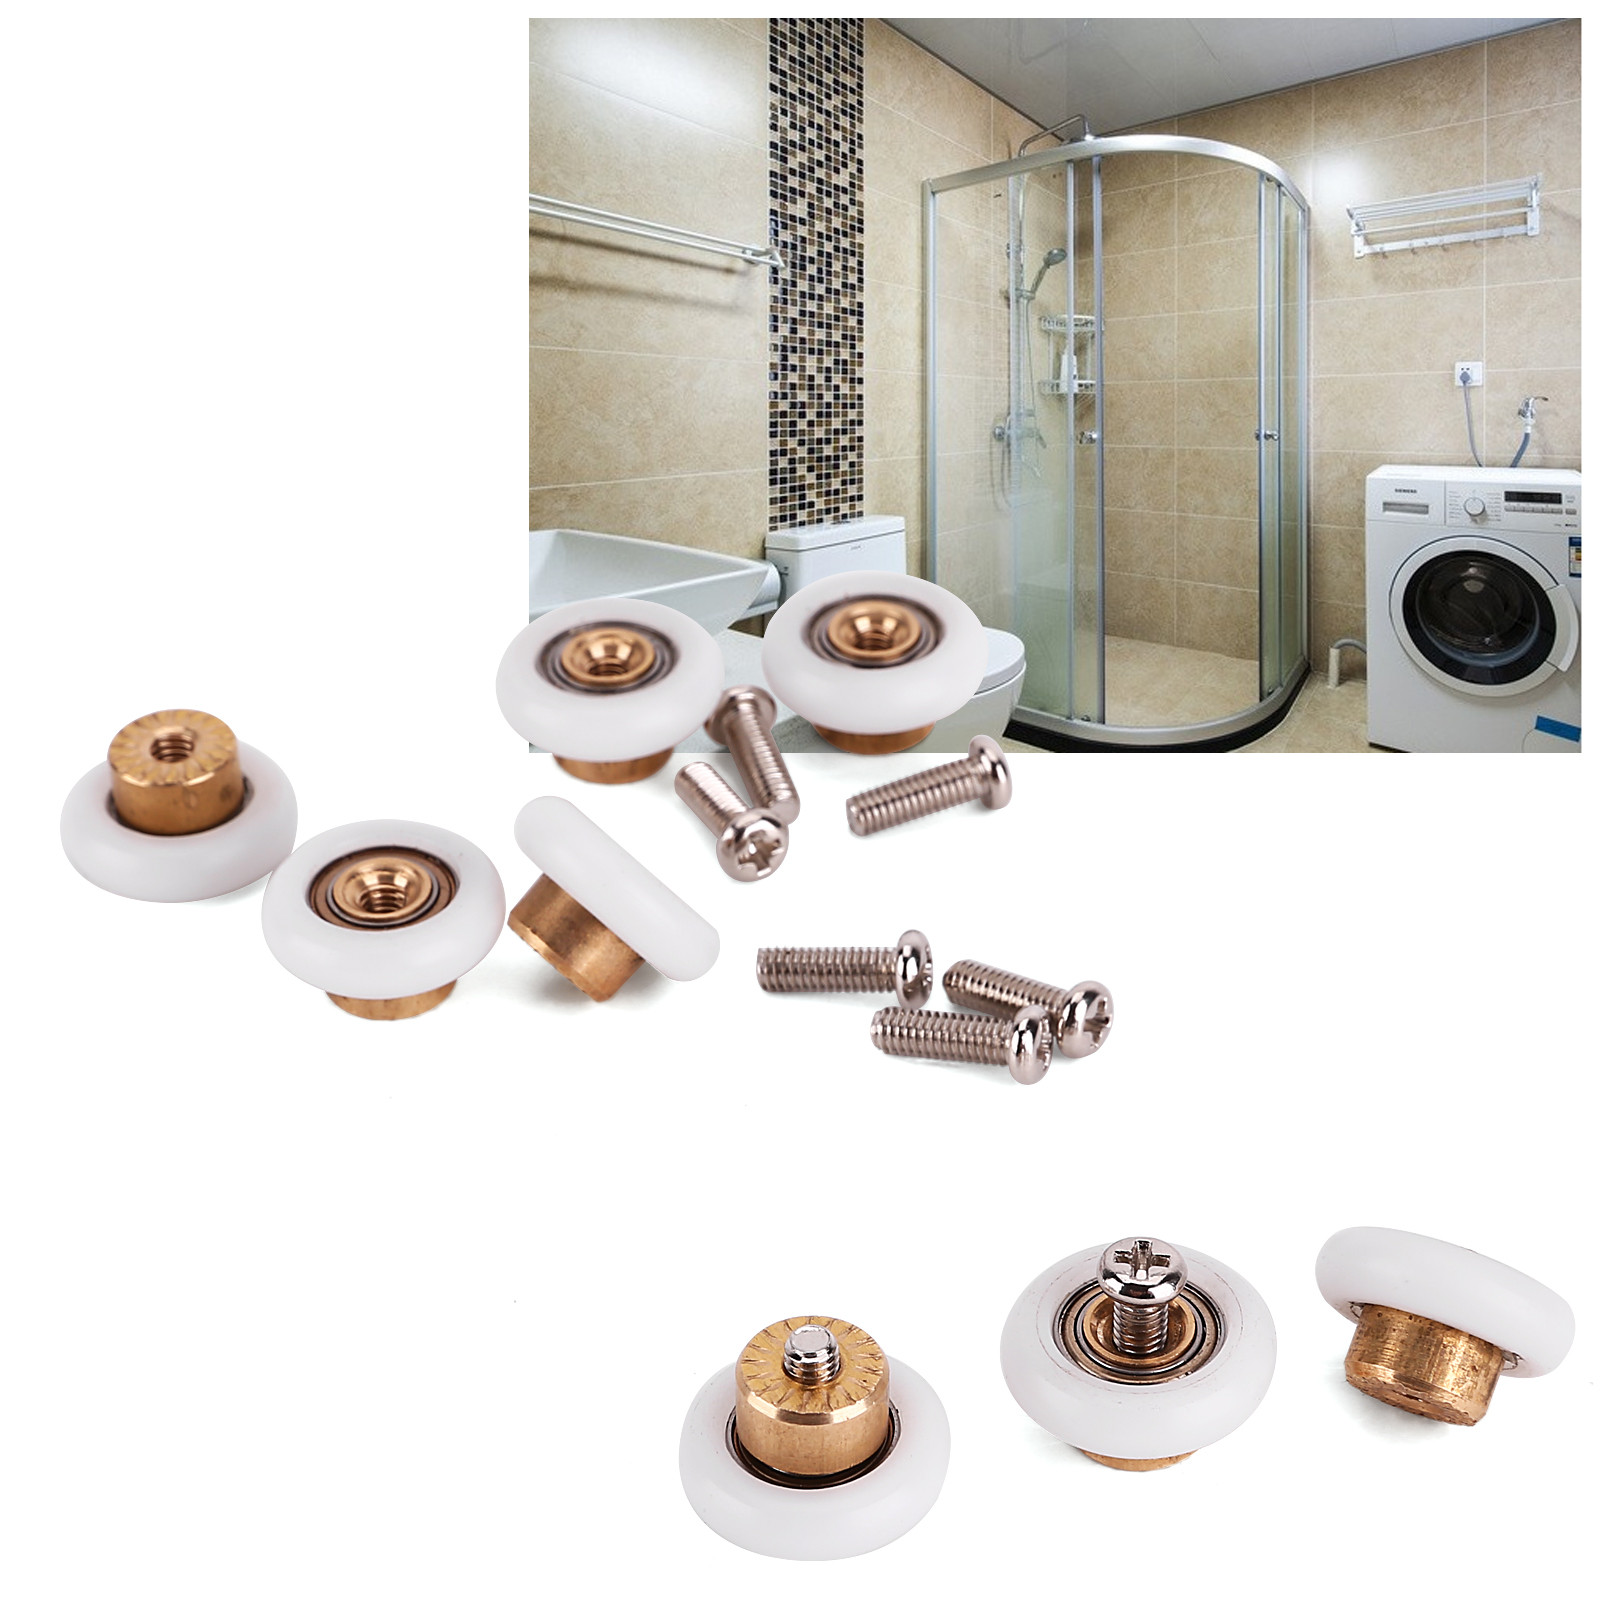 8x roulette 19mm remplacement pour roue de porte cabine douche salle de bain ebay. Black Bedroom Furniture Sets. Home Design Ideas